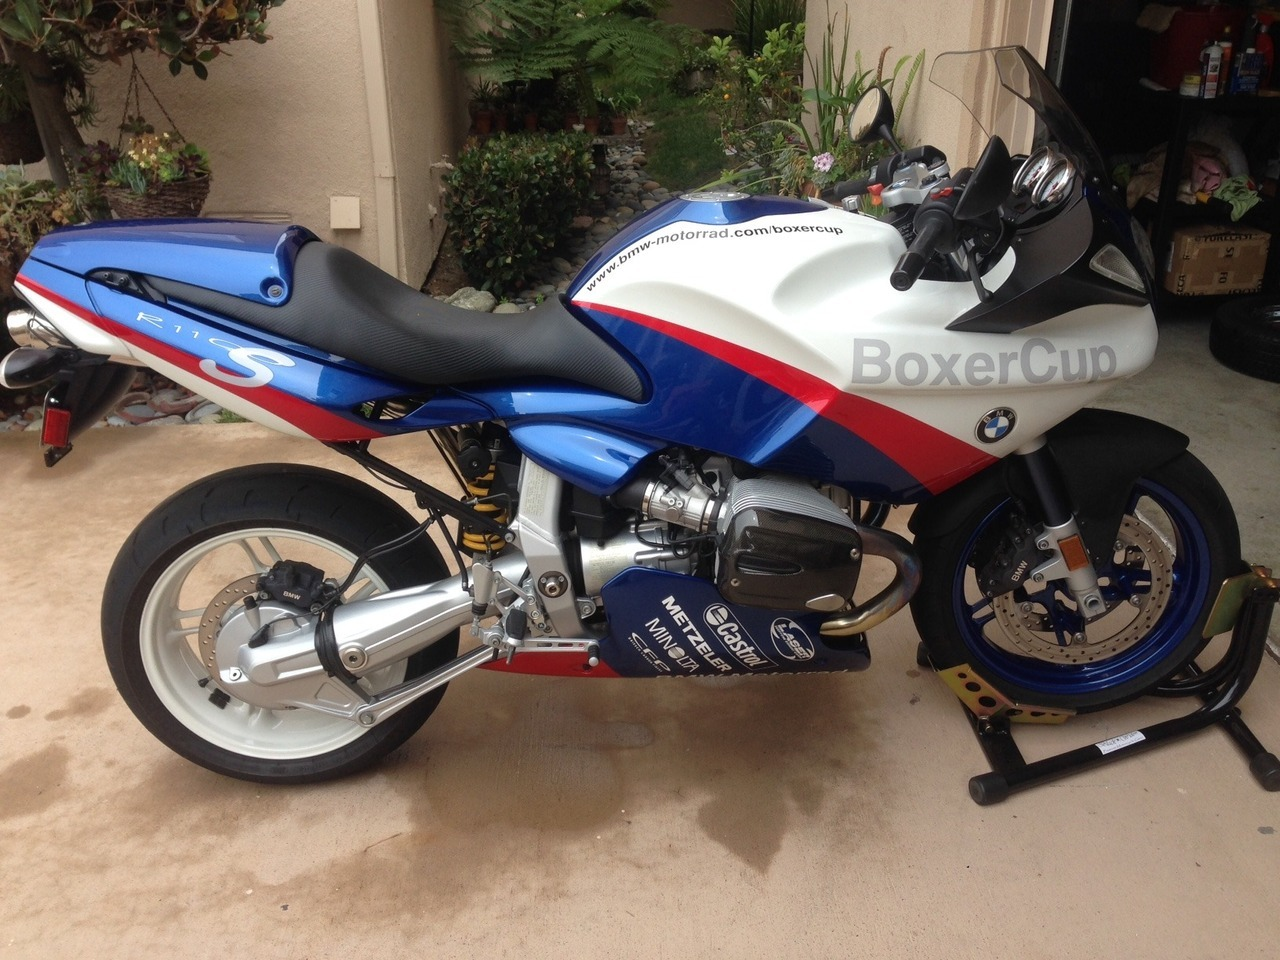 2005 BMW R 1100 S, motorcycle listing